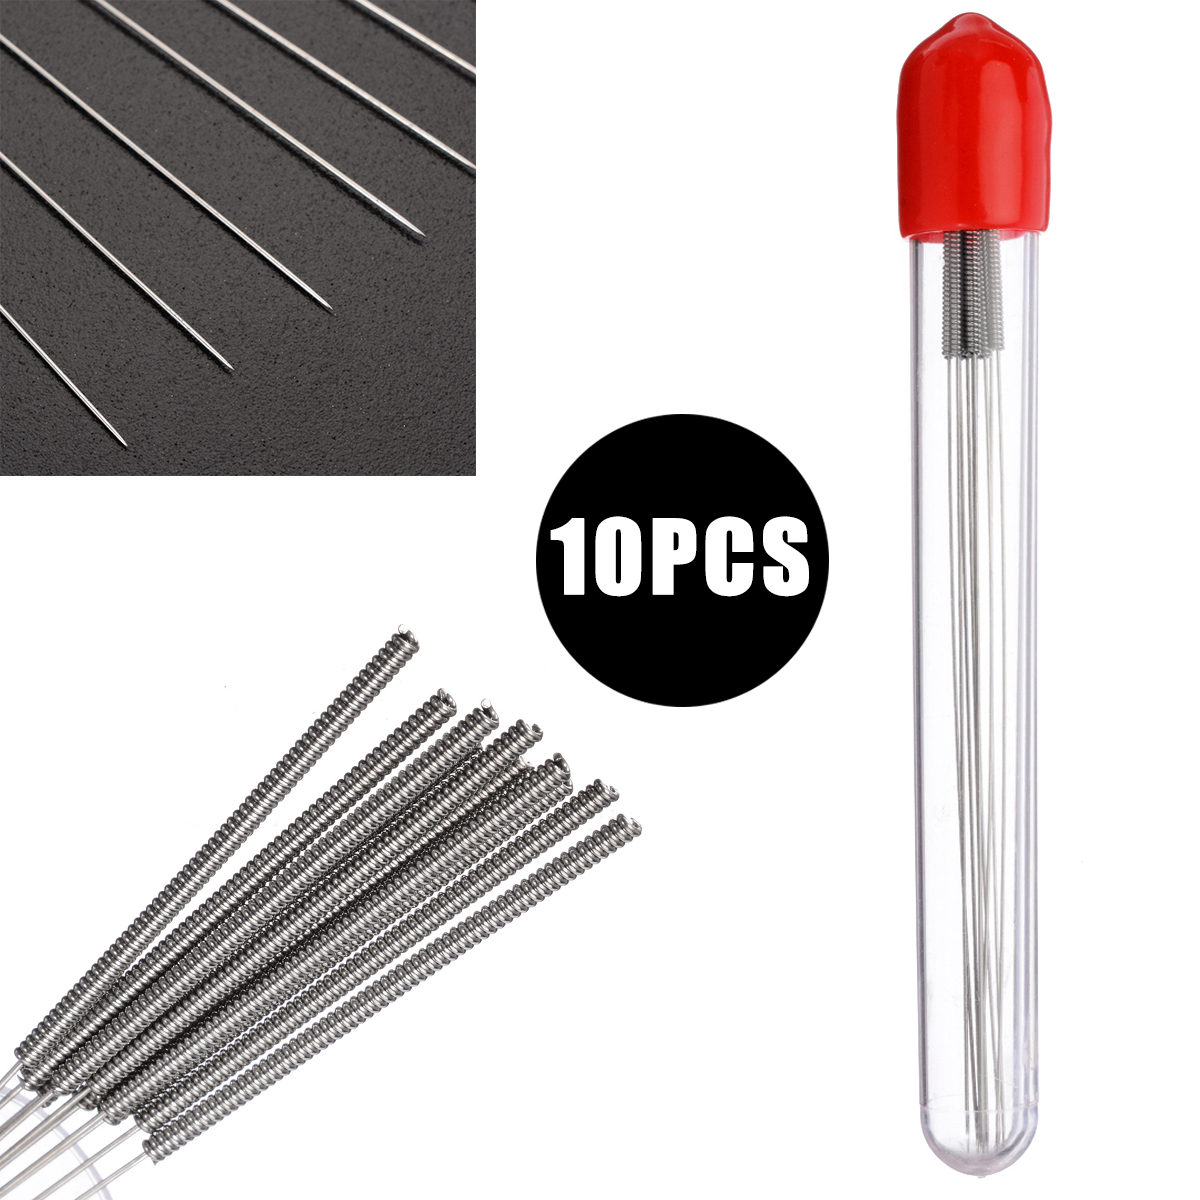 10pcs/Set 105mm Length Print Nozzle Cleaner 0.4mm Drill Bits For Cleaning 3D Printer Blocked Nozzles